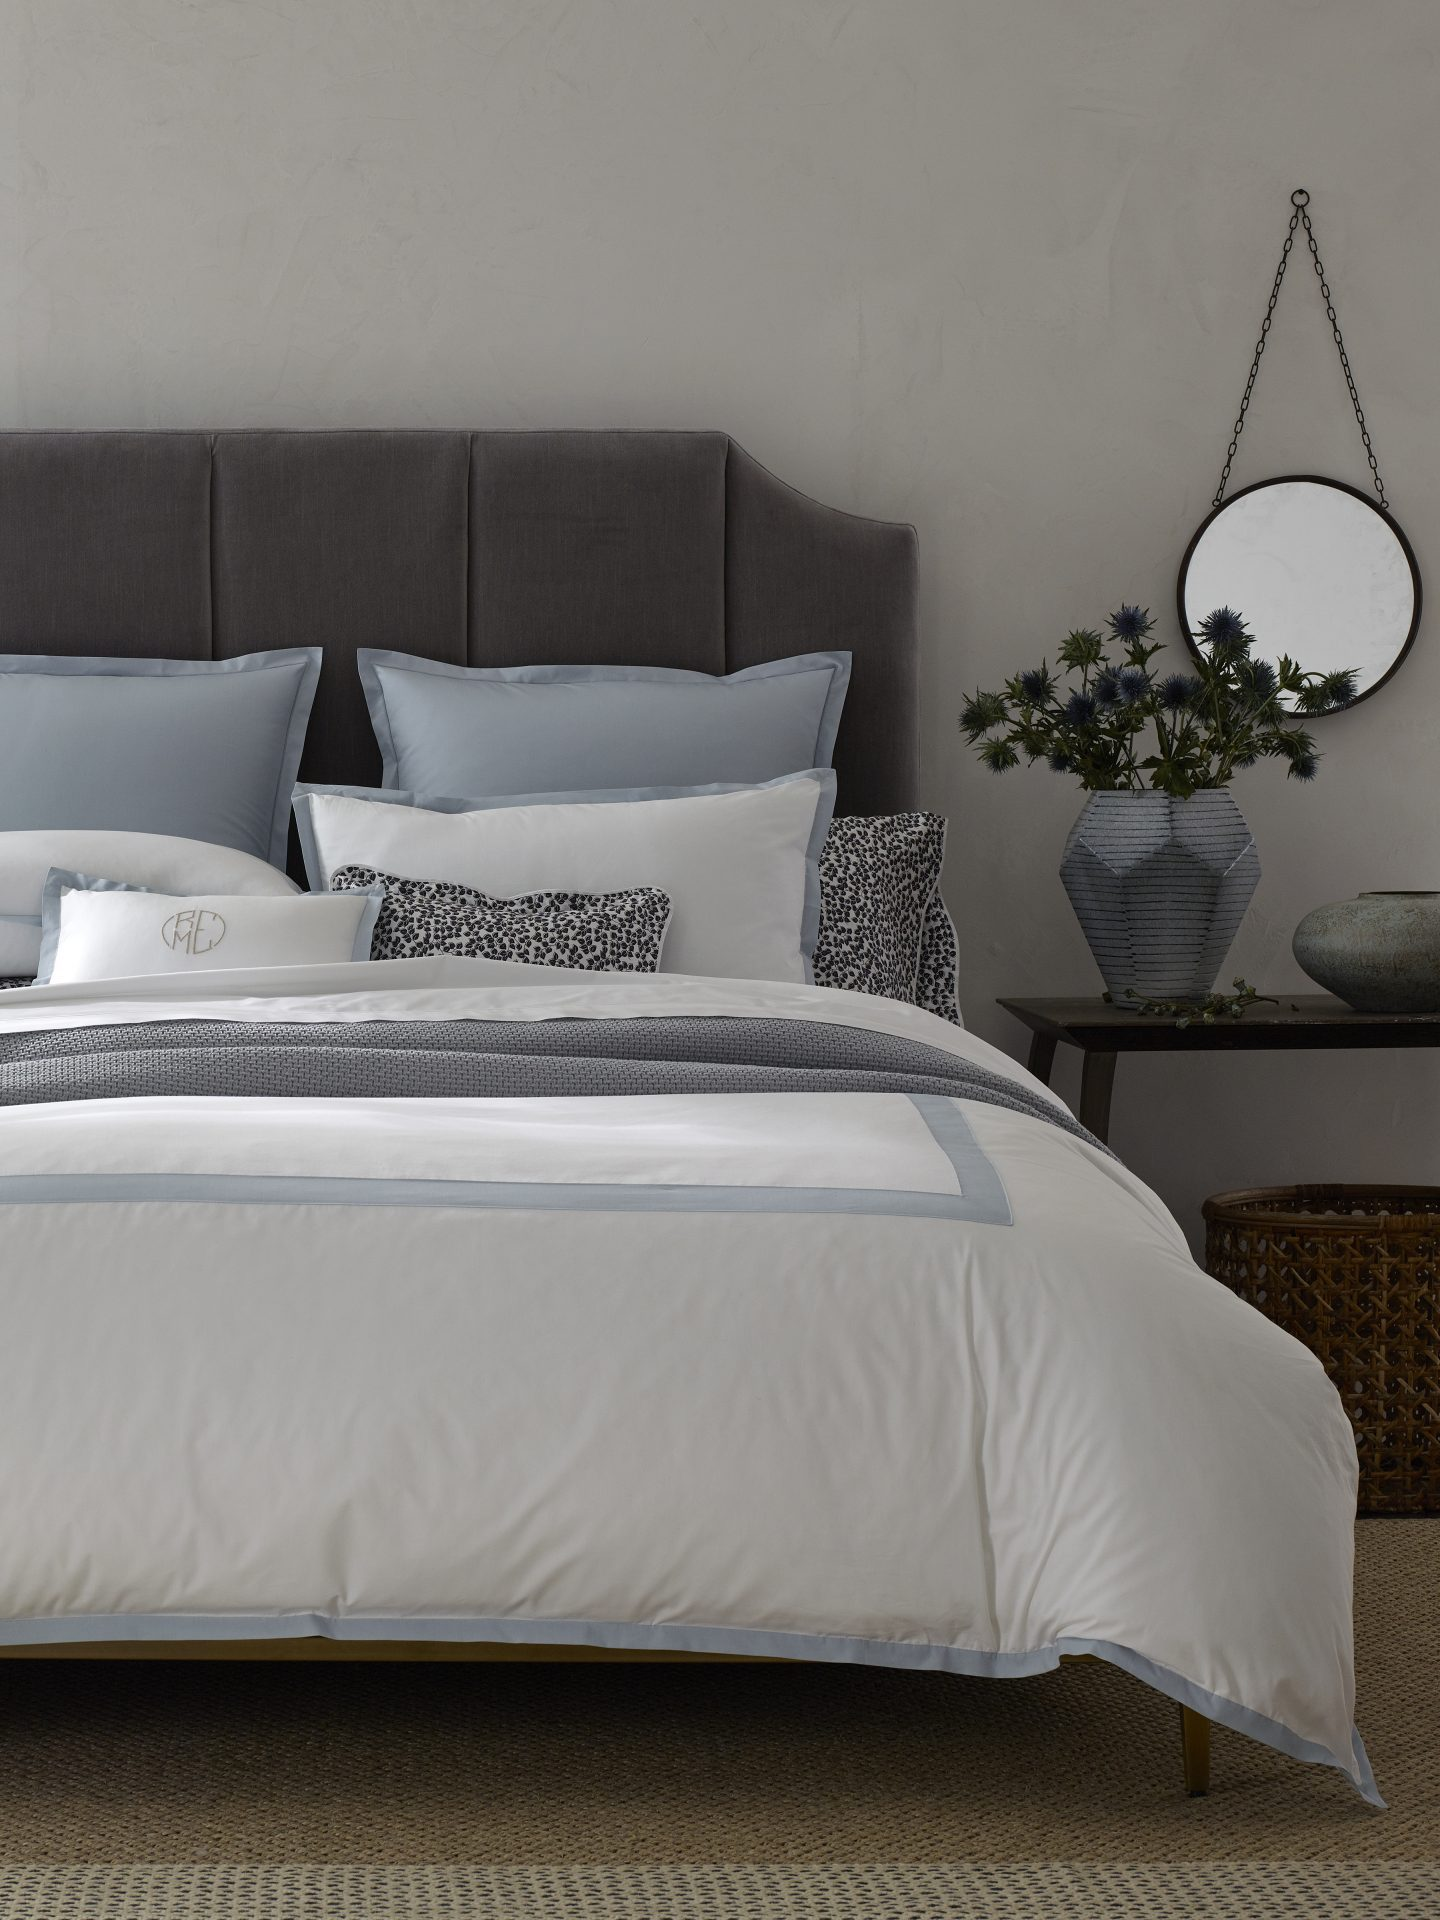 Oberlin Pool Duvet Cover And Shams By Matouk Porter Amp Prince